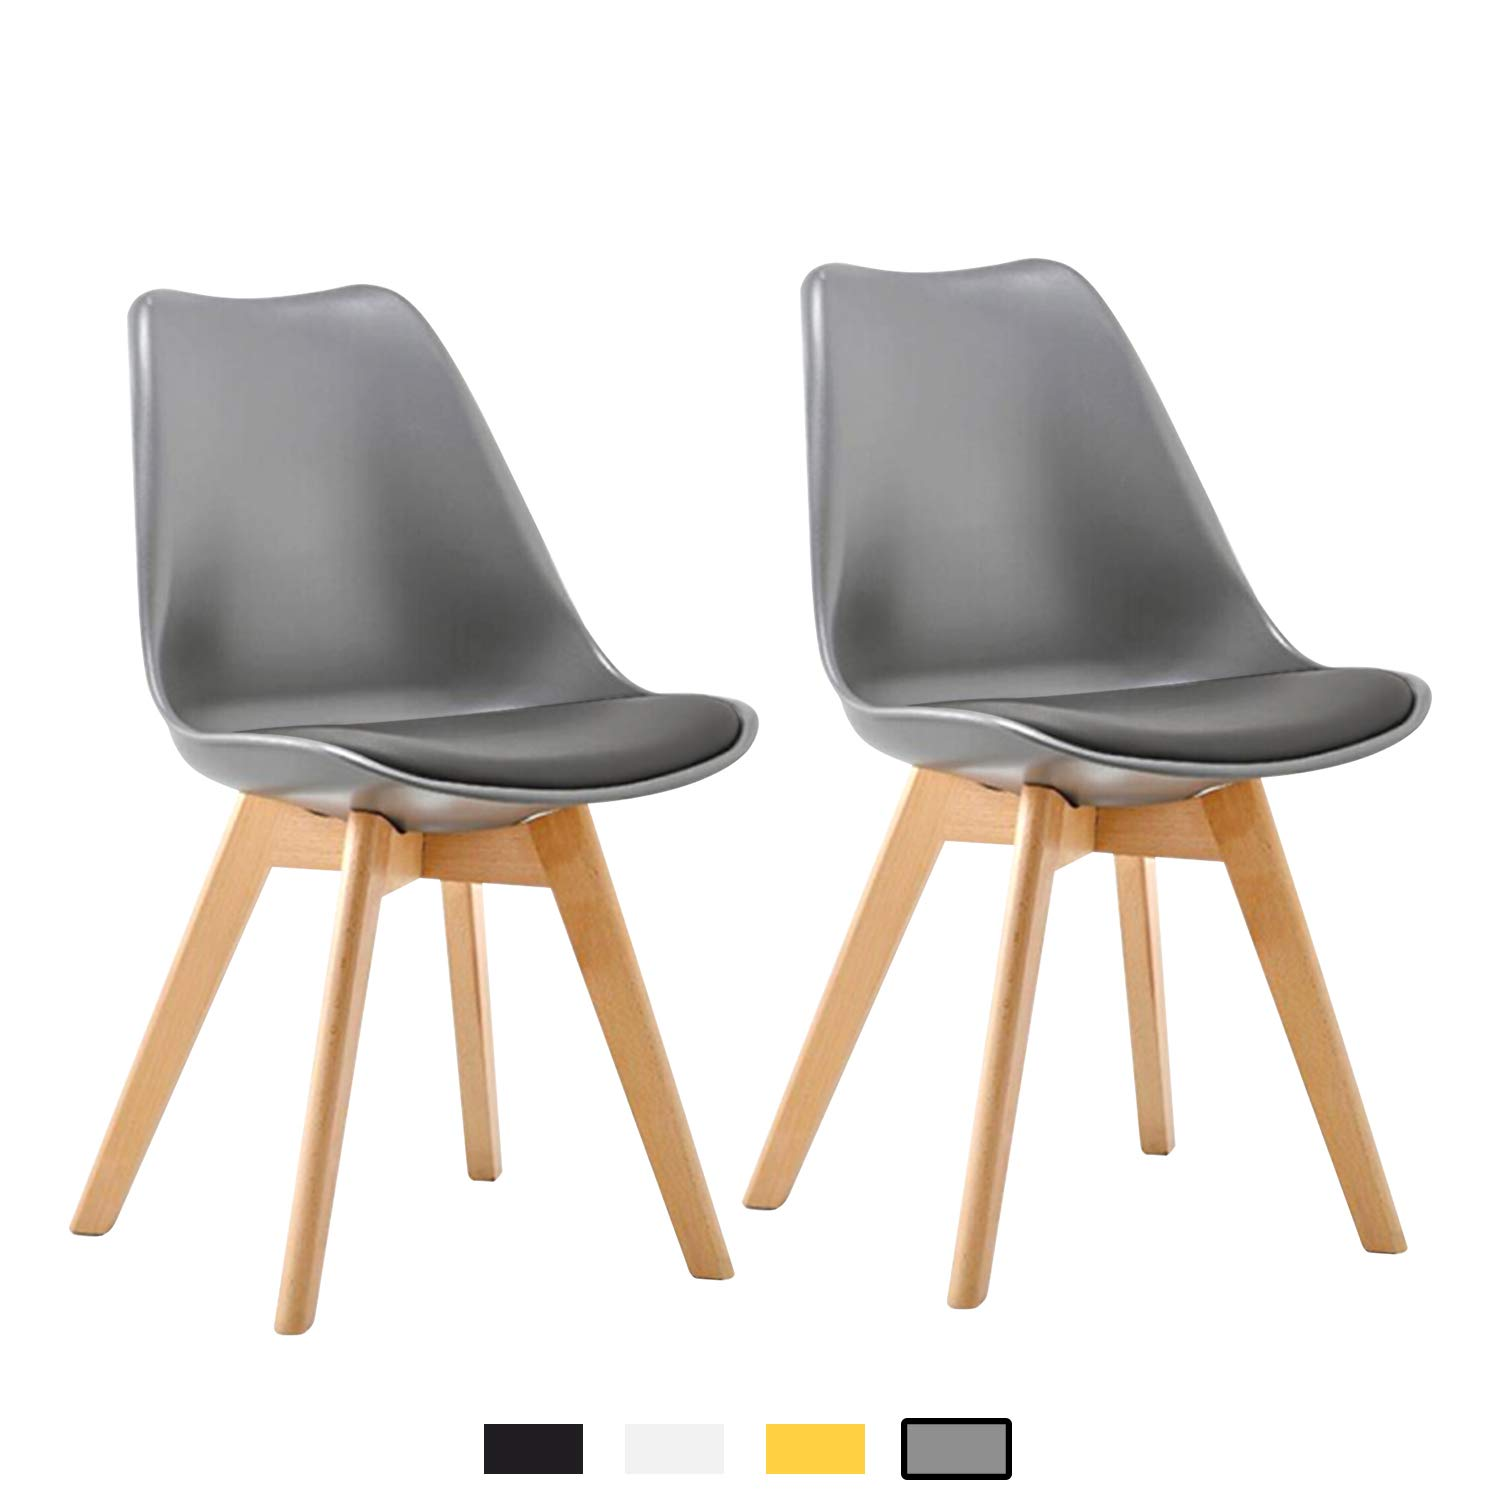 YEEFY Dining Chair Gray Mid-Century Dining Chairs for Living Room, Dining Room, Set of 2 by YEEFY